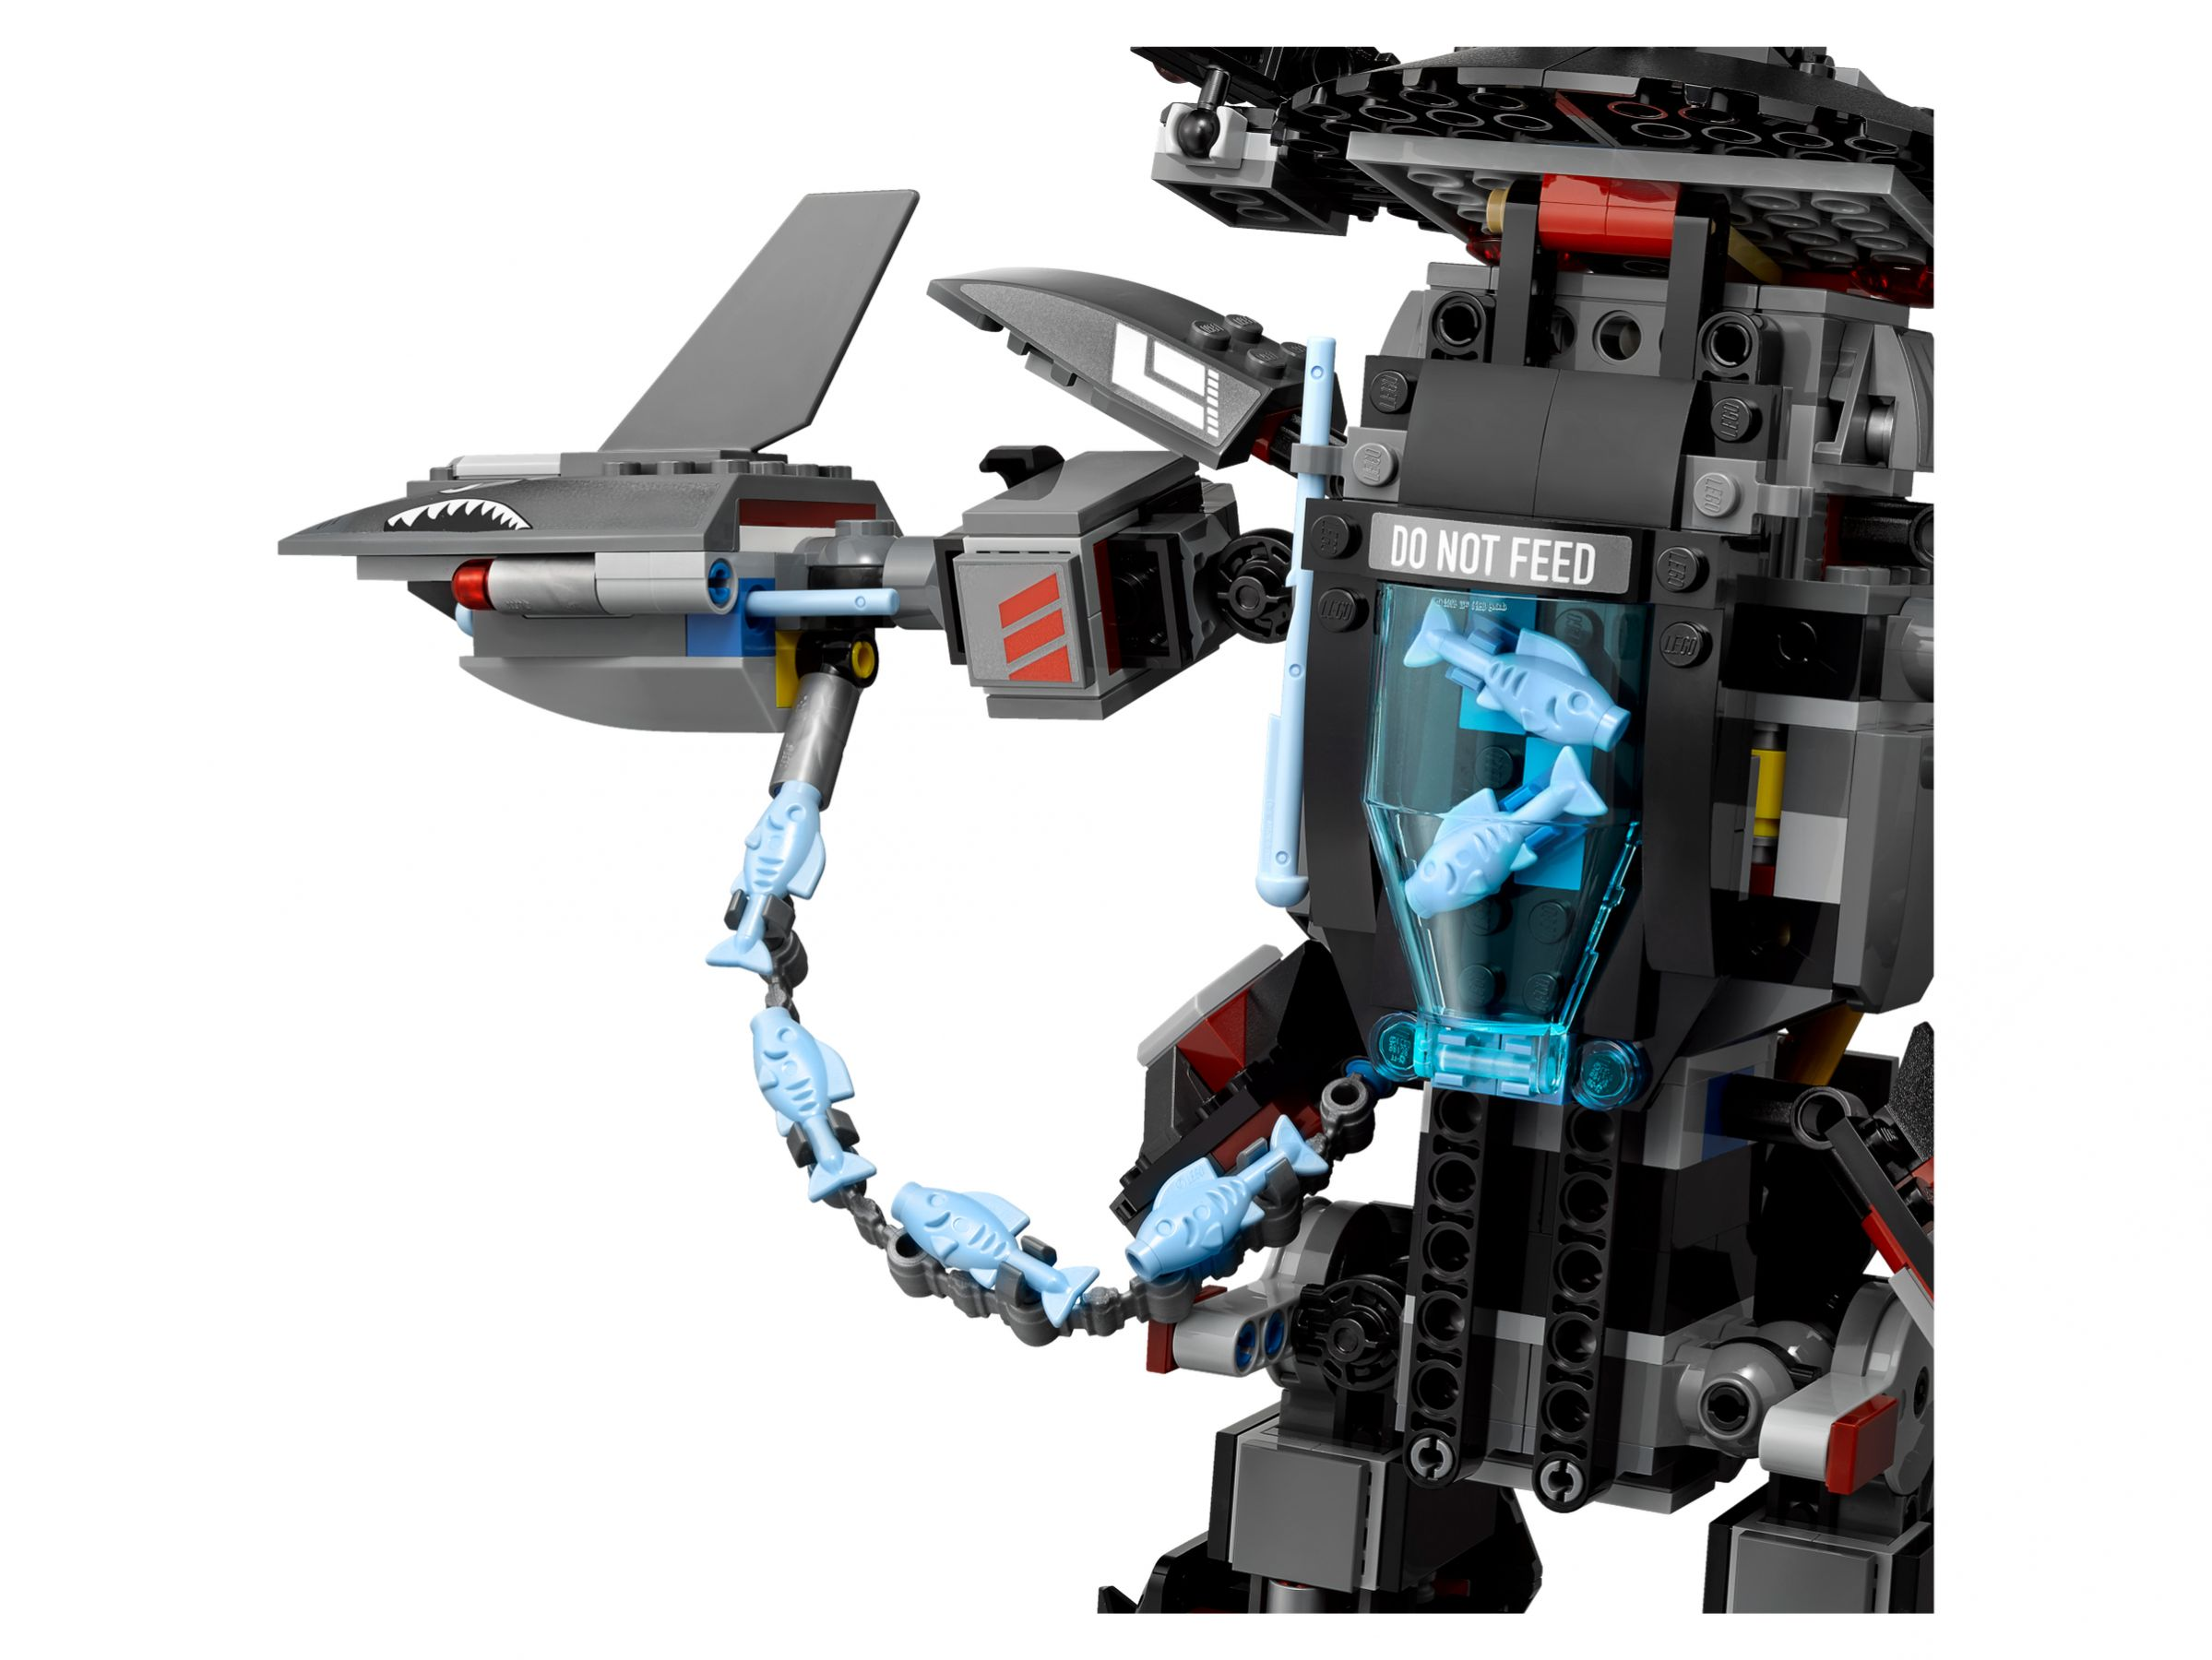 LEGO The LEGO Ninjago Movie 70613 Garmadon's Robo-Hai LEGO_70613_alt5.jpg